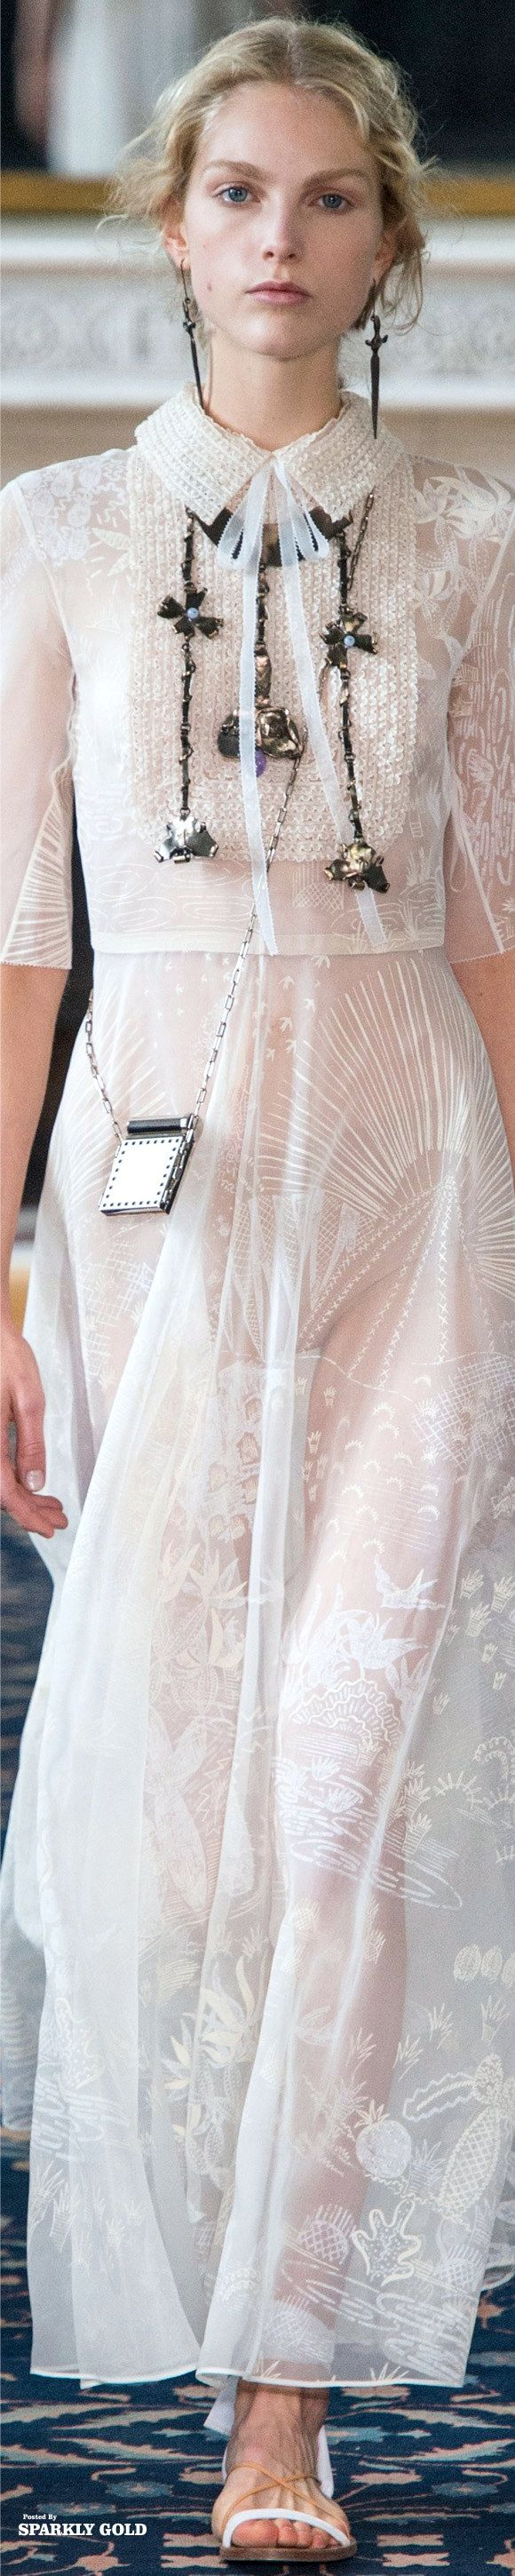 Using black accessories over a completely white outfit   Valentino Spring 2017 RTW